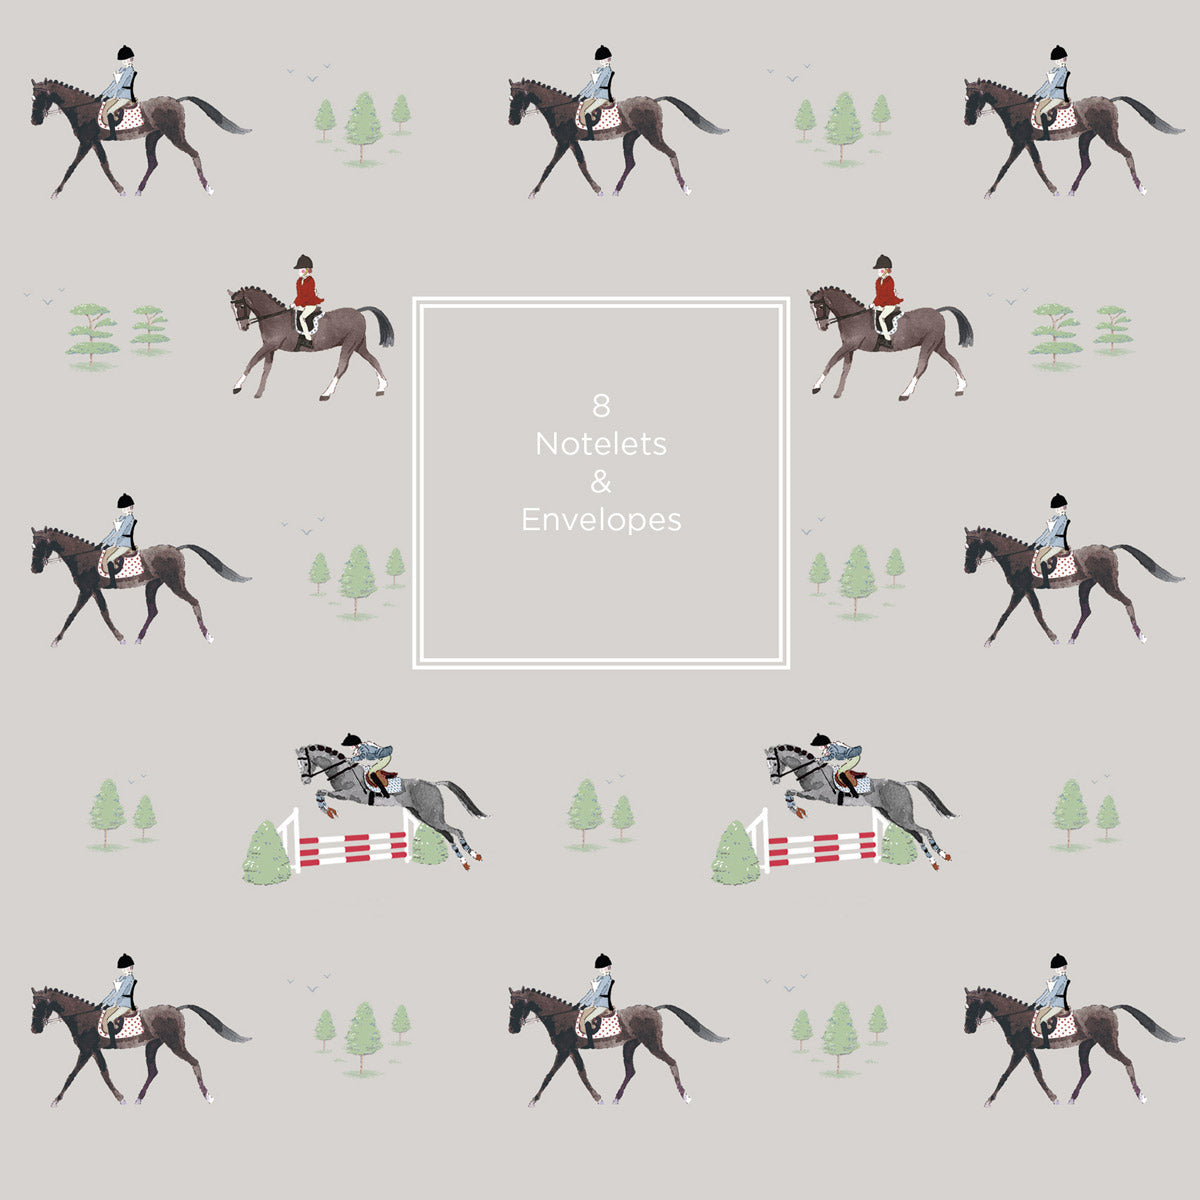 Horses Notelet Wallet - 8 notelets & envelopes